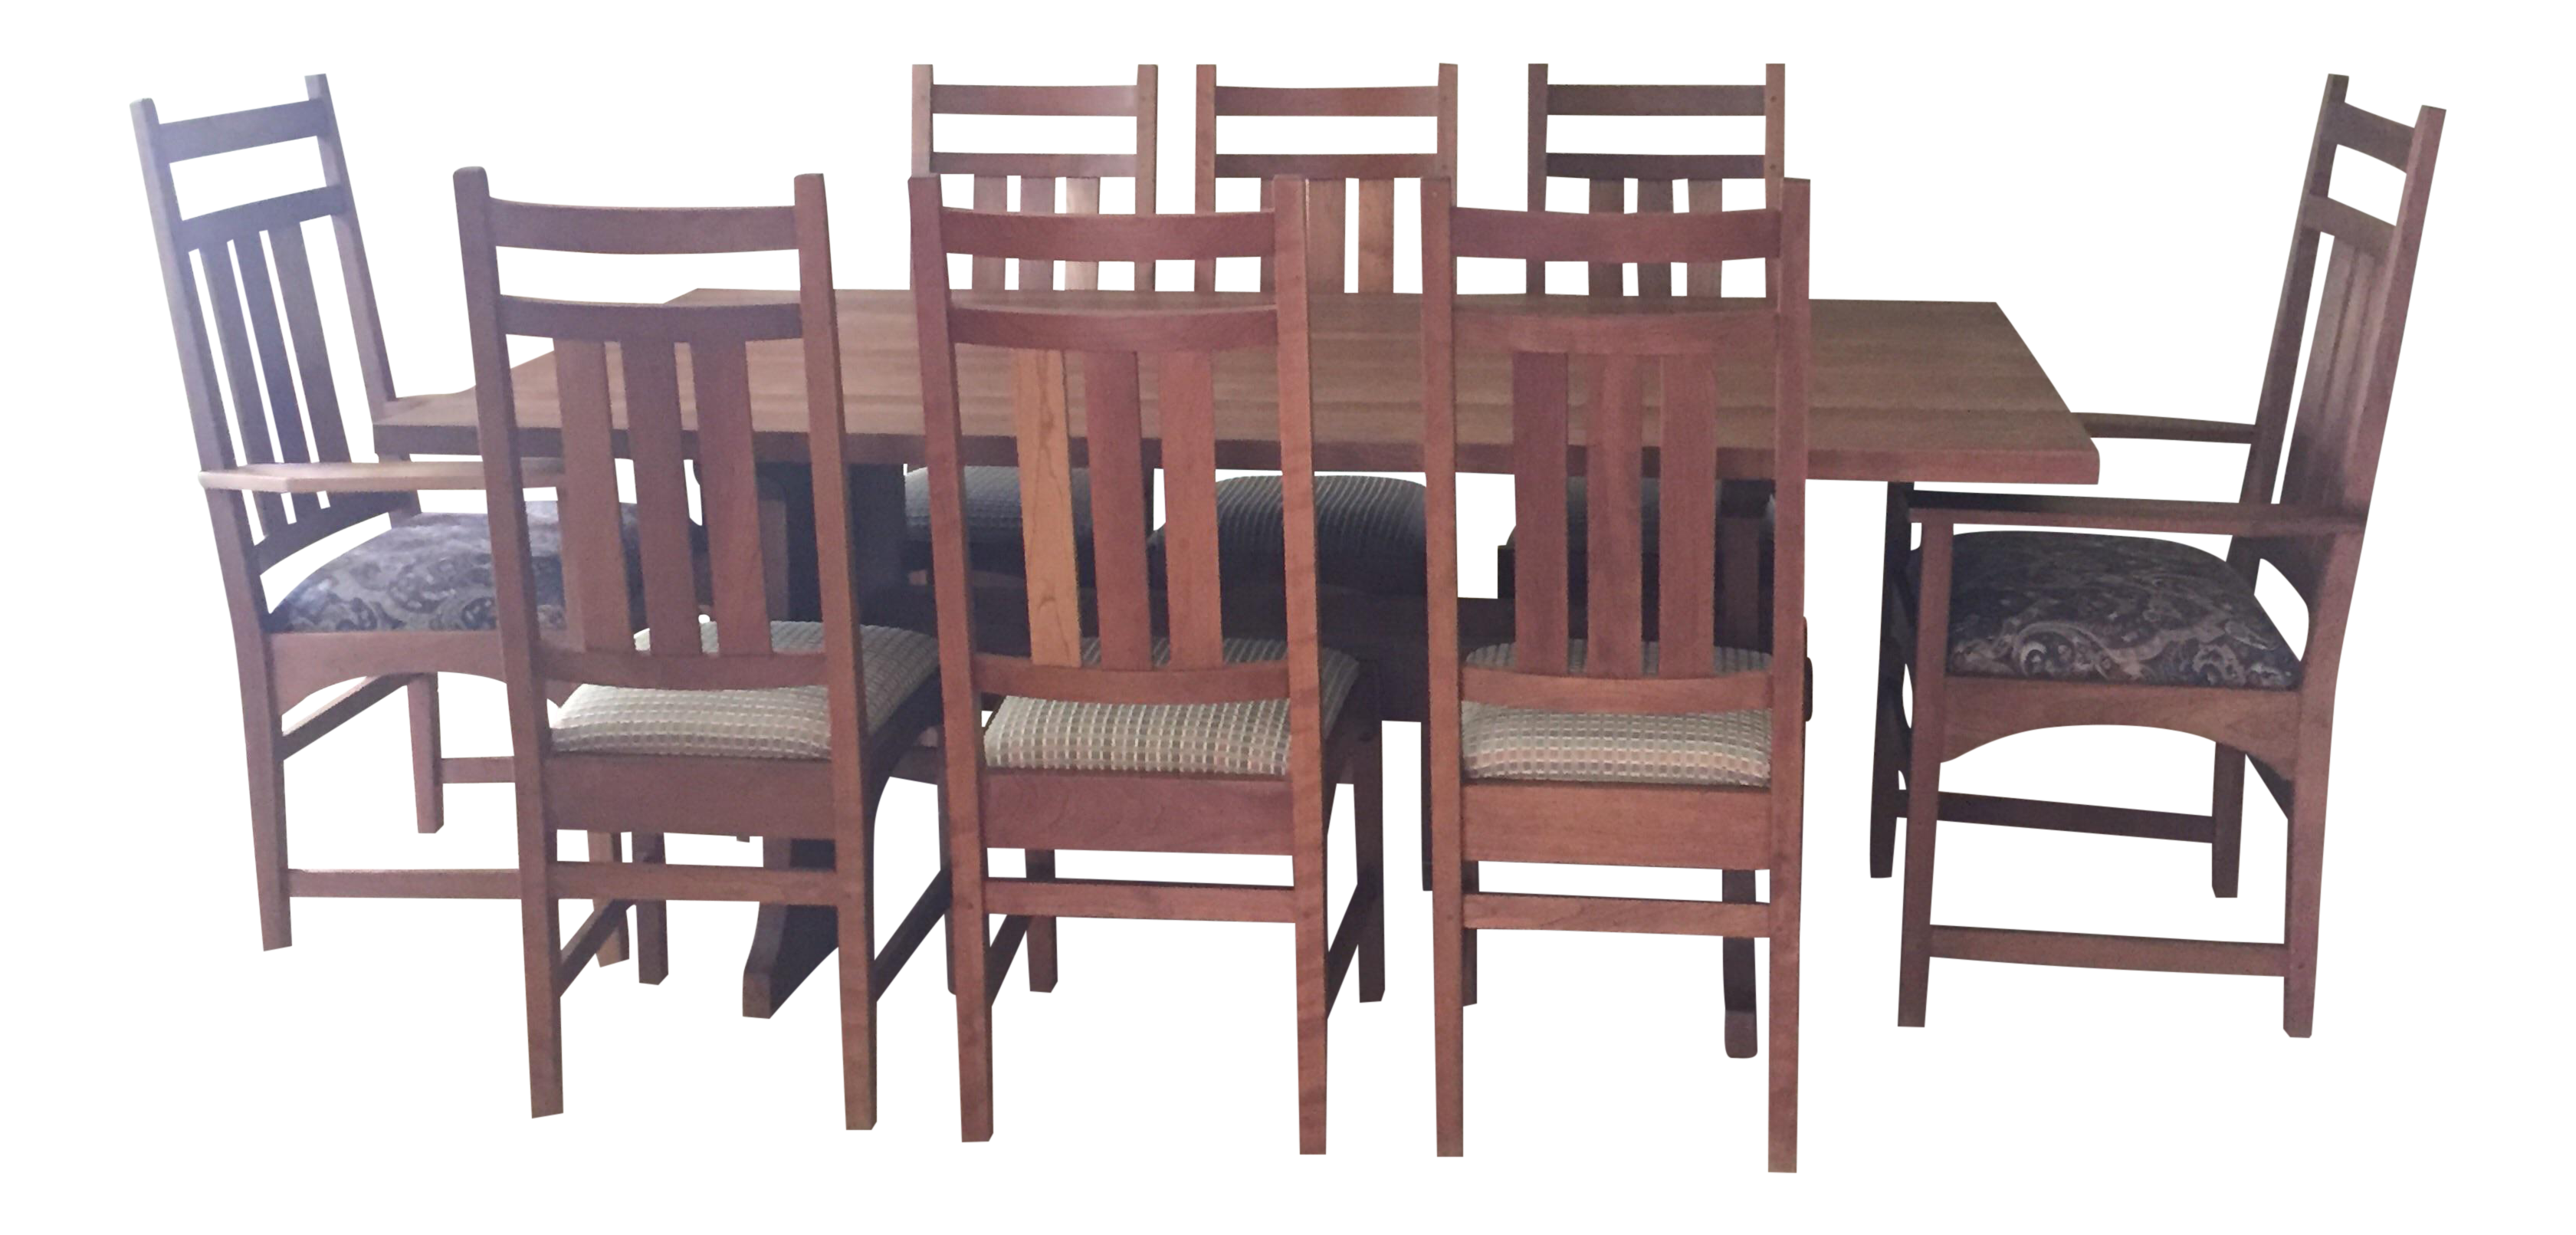 https://chairish-prod.freetls.fastly.net/image/product/sized/b734aa59-0573-41ac-82c1-1857158b77b7/stickley-mission-cherry-dining-table-and-8-chairs-2363